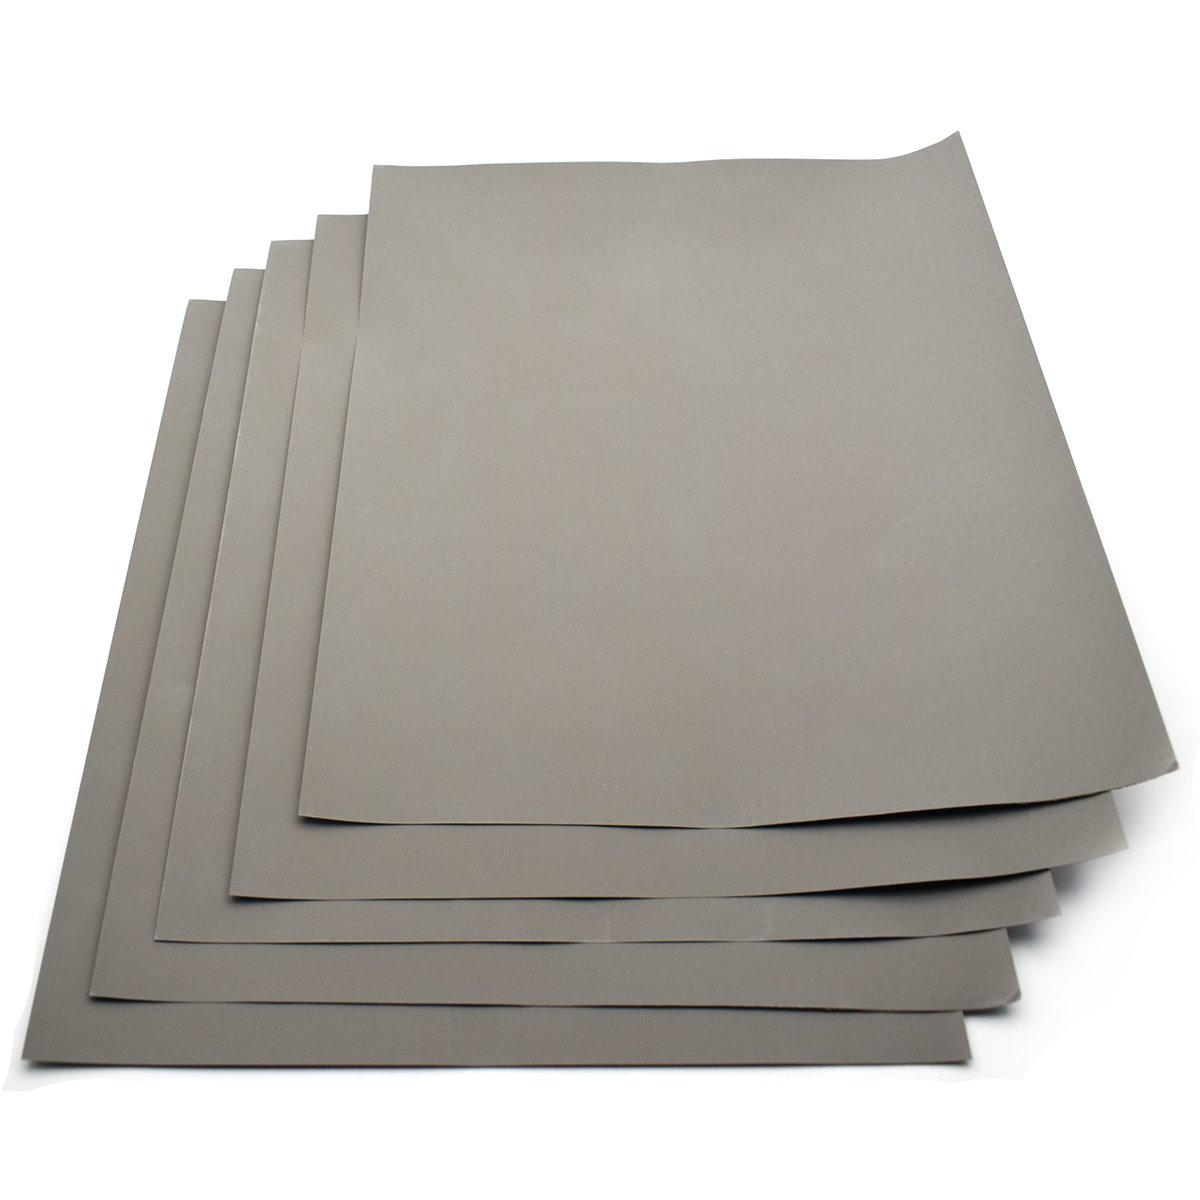 5 Sheets -Grit 7000 Waterproof Paper Wet/Dry Silicon Carbide Full Size 230*280mm Sanding Paper KEEJEA